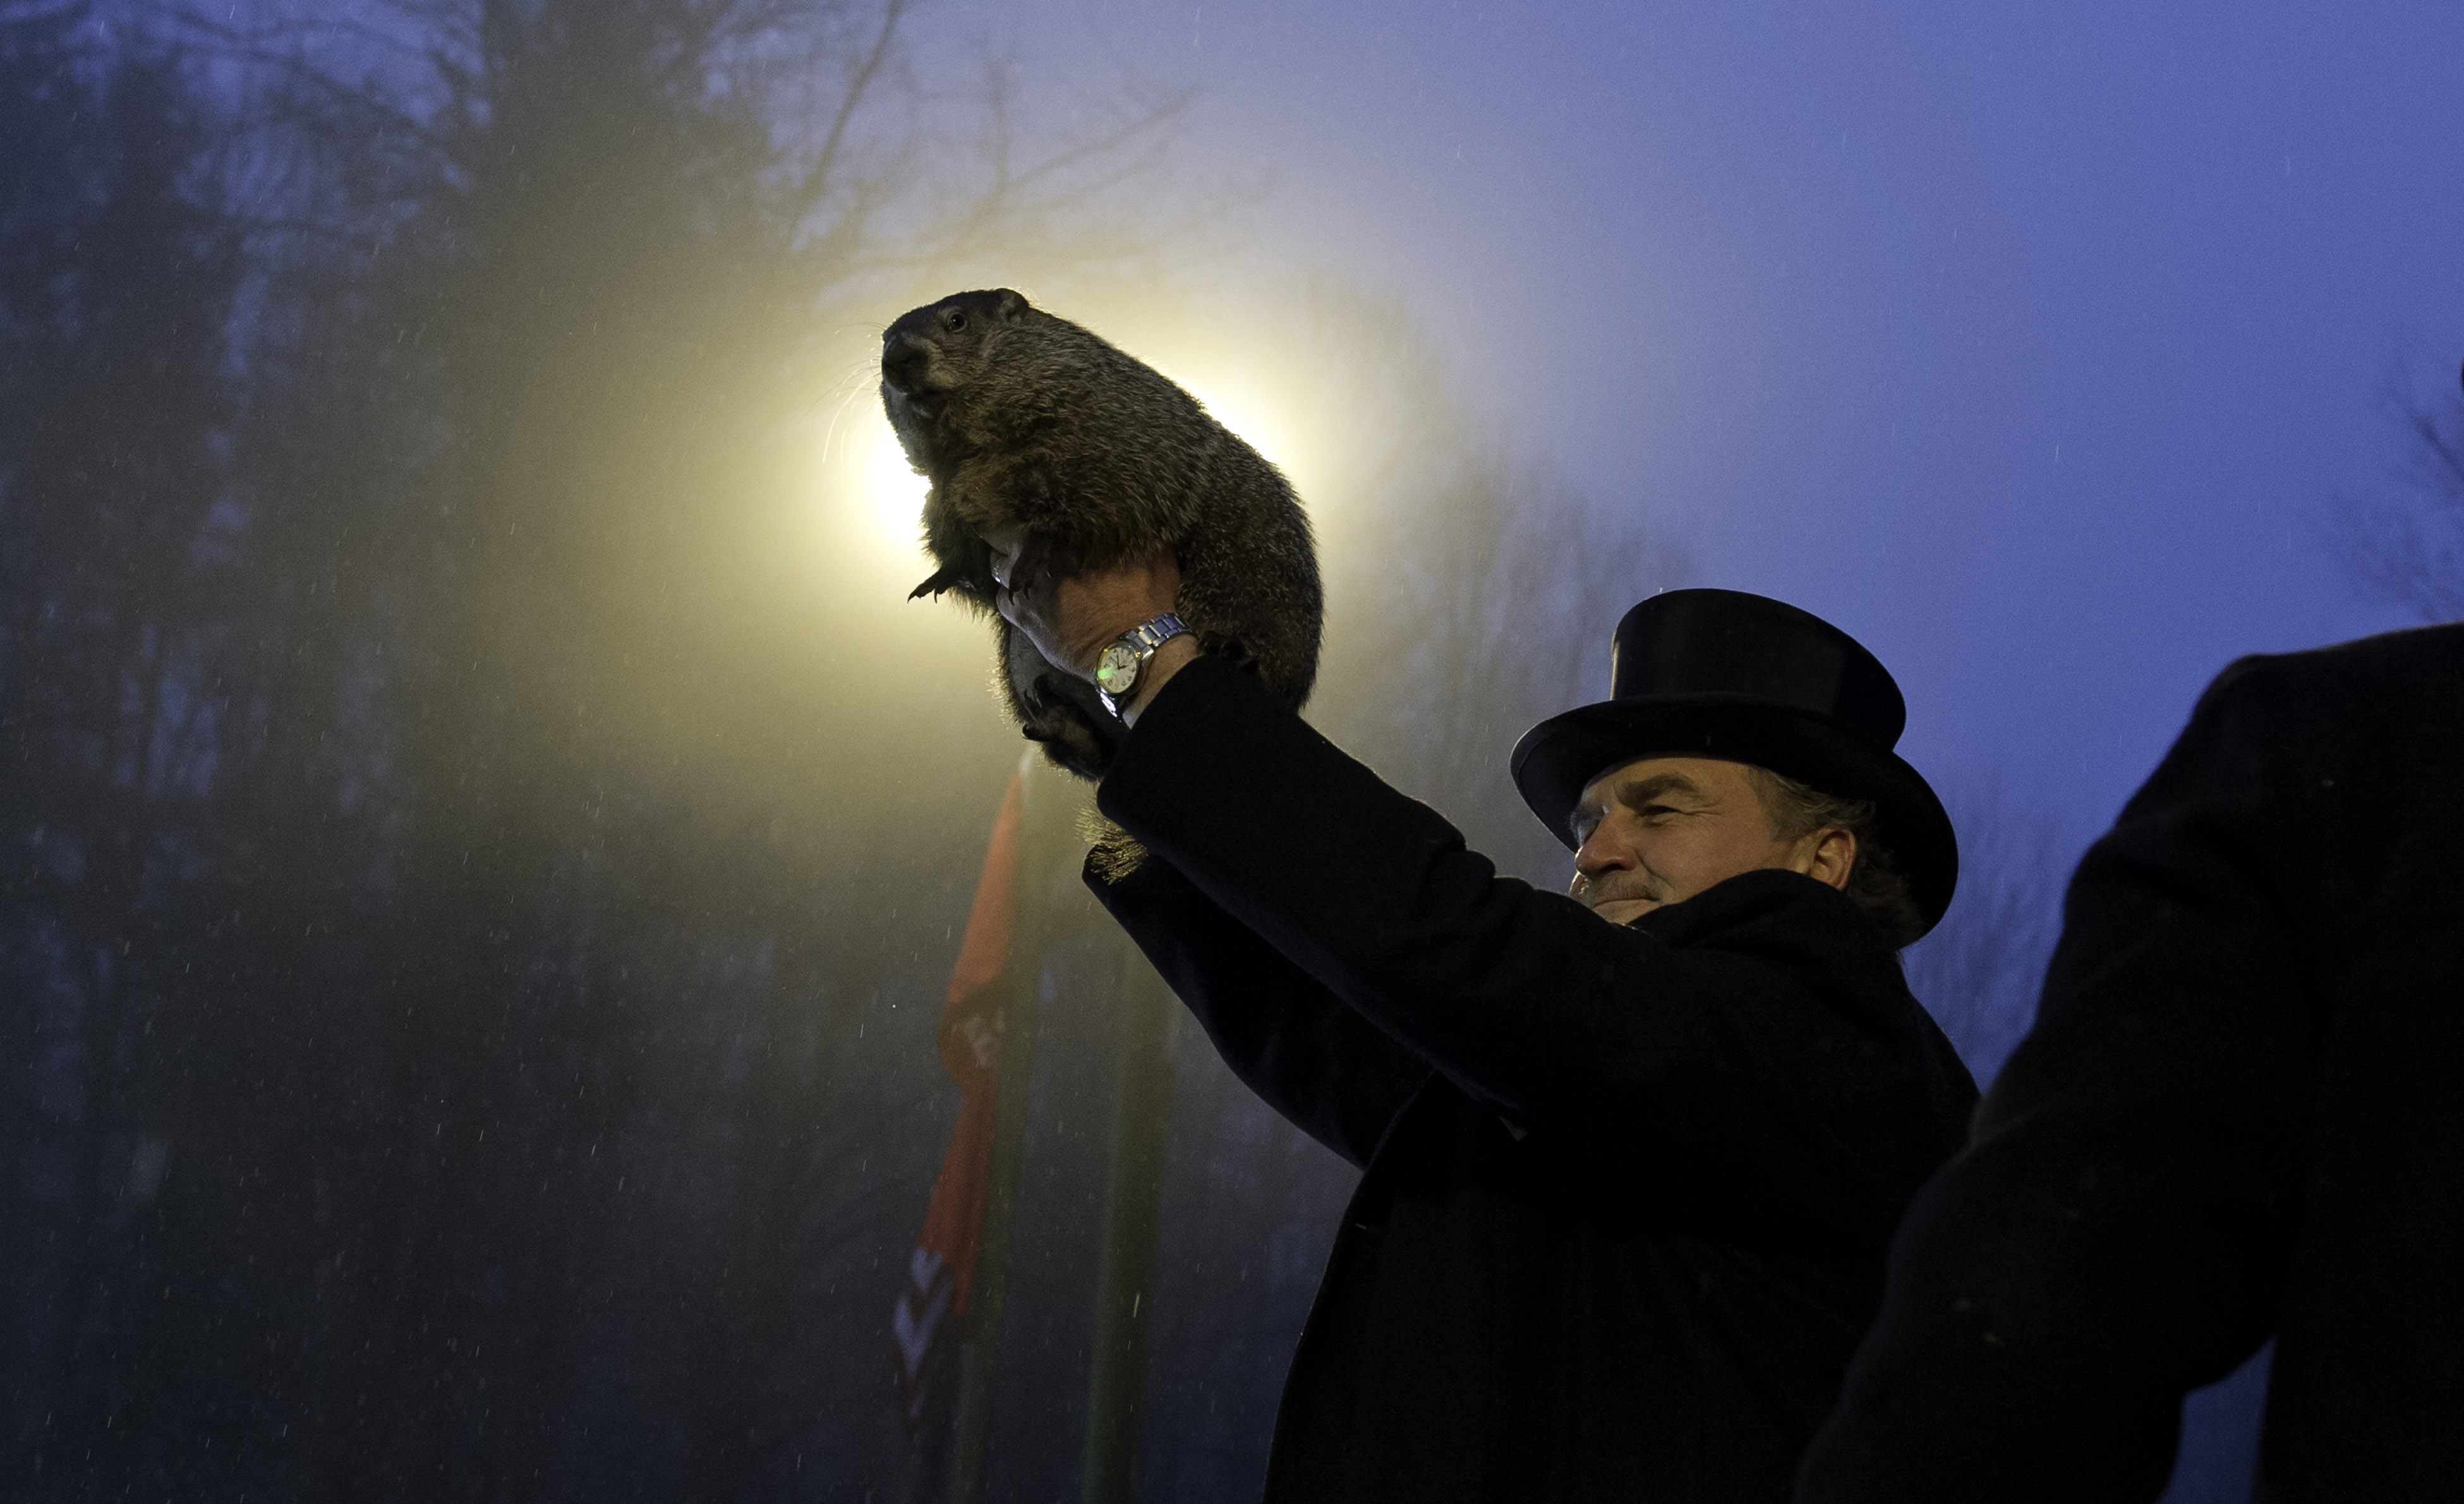 Groundhog handler John Griffiths holds Punxsutawney Phil after he saw his shadow predicting six more weeks of winter during 128th annual Groundhog Day festivities on February 2, 2014 in Punxsutawney, Pennsylvania. Groundhog Day is a popular tradition in the United States and Canada. A smaller than usual crowd this year of less than 25,000 people spent a night of revelry awaiting the sunrise and the groundhog's exit from his winter den. If Punxsutawney Phil sees his shadow he regards it as an omen of six more weeks of bad weather and returns to his den. Early spring arrives if he does not see his shadow, causing Phil to remain above ground.